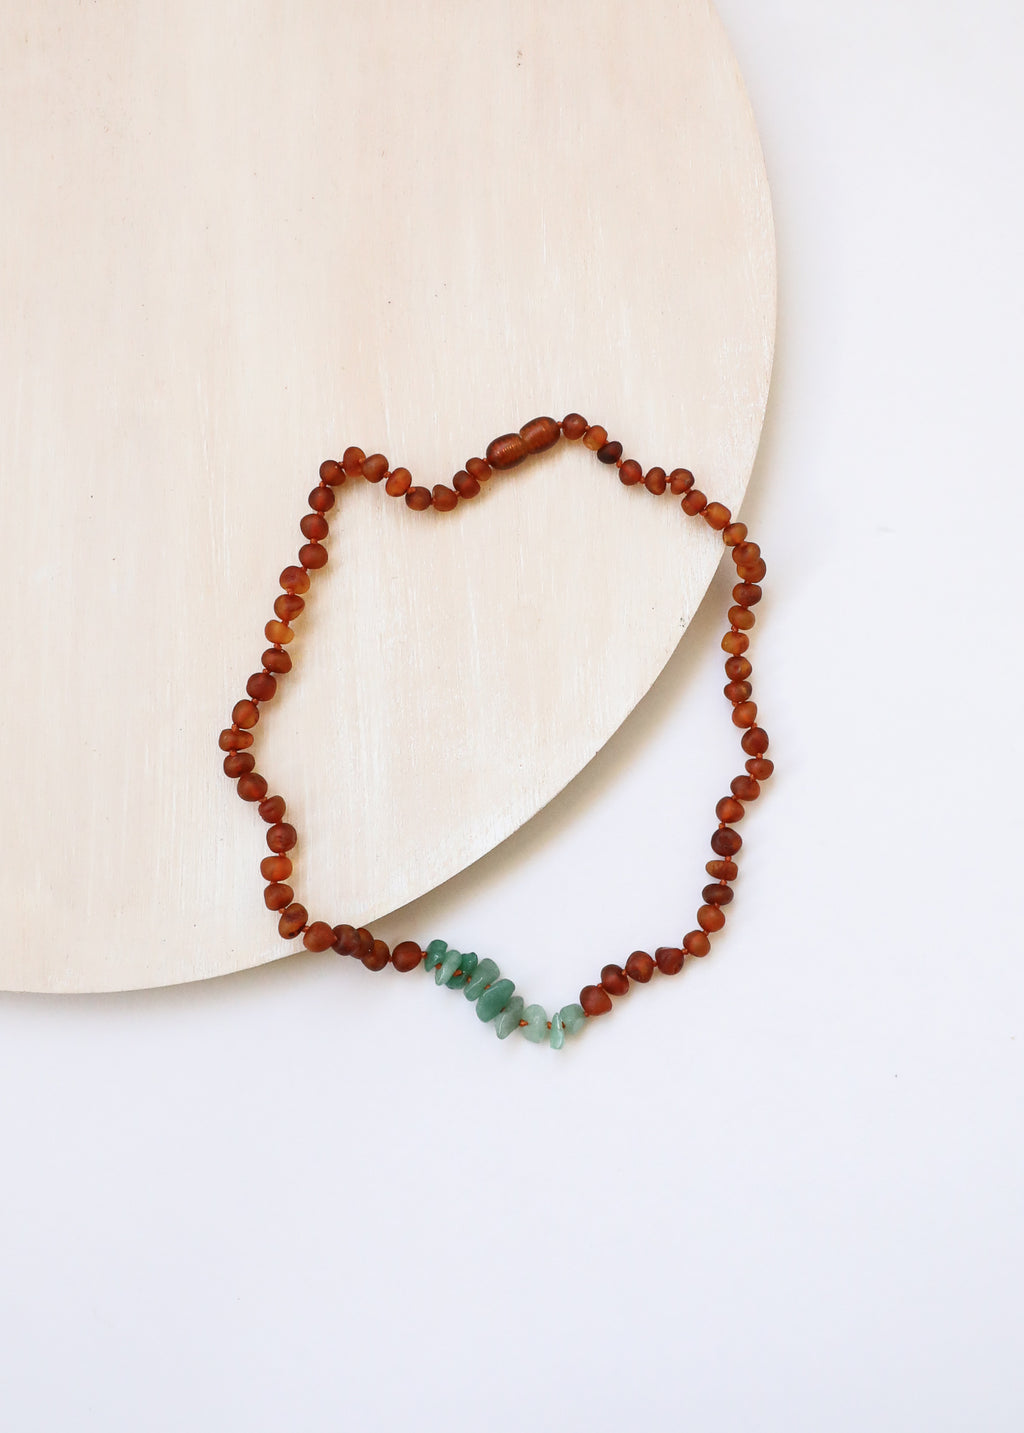 Raw Cognac Amber + Raw Aventurine || Necklace